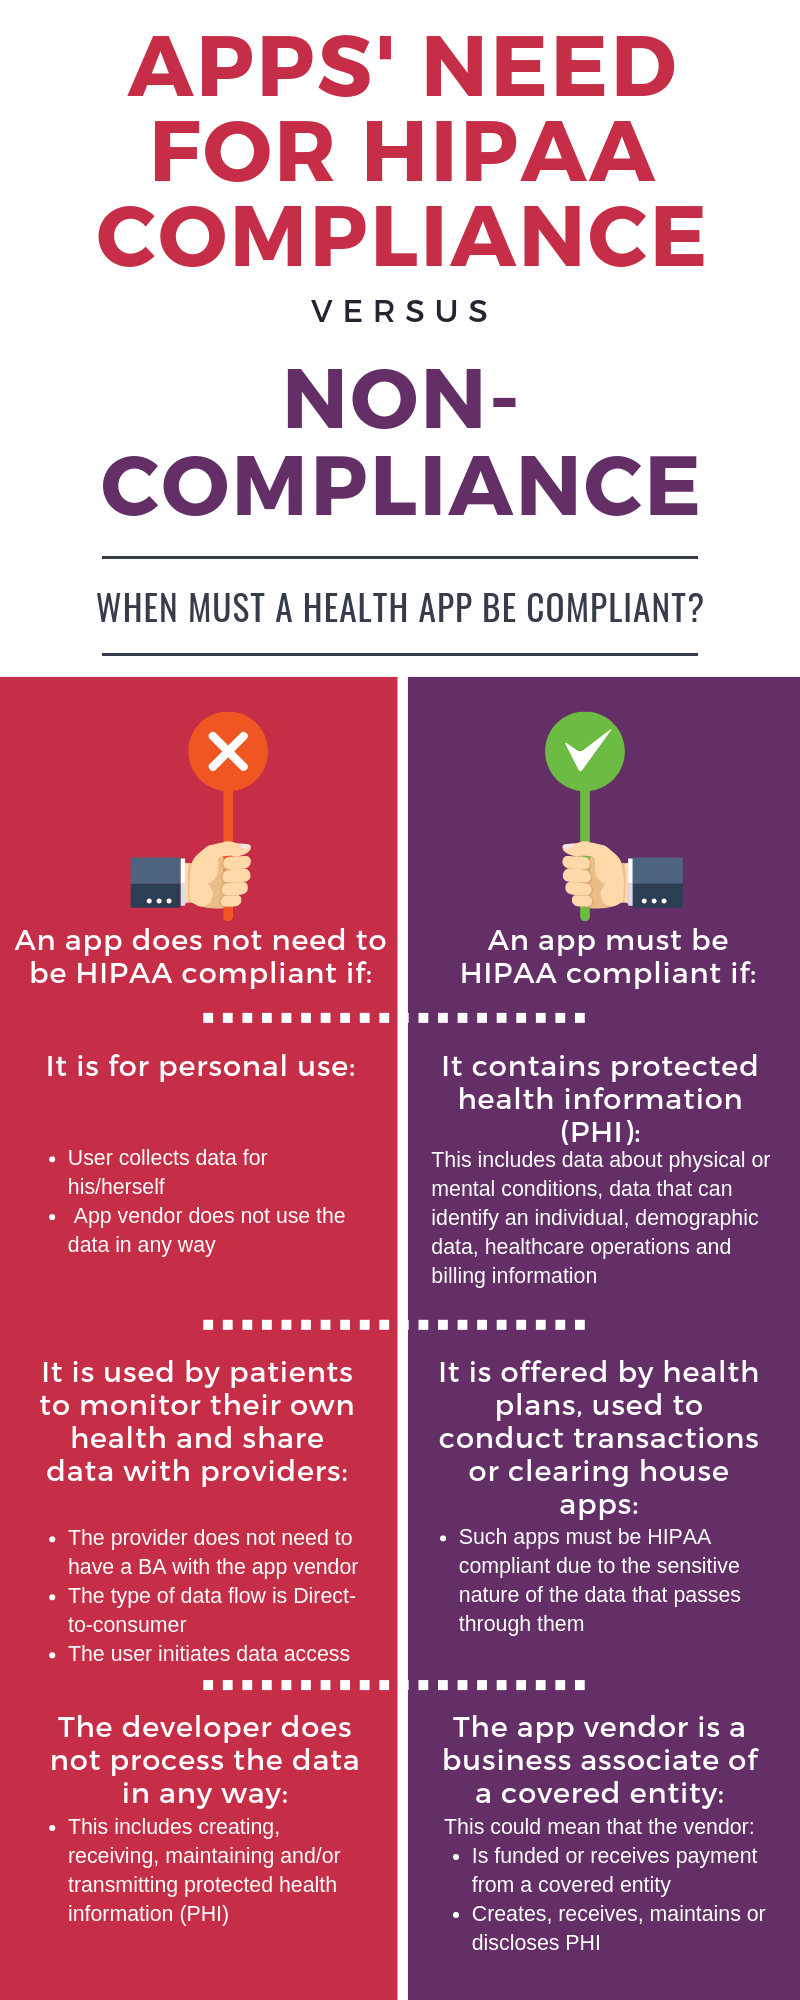 Apps' Need for HIPAA Compliance vs. Non-Compliance